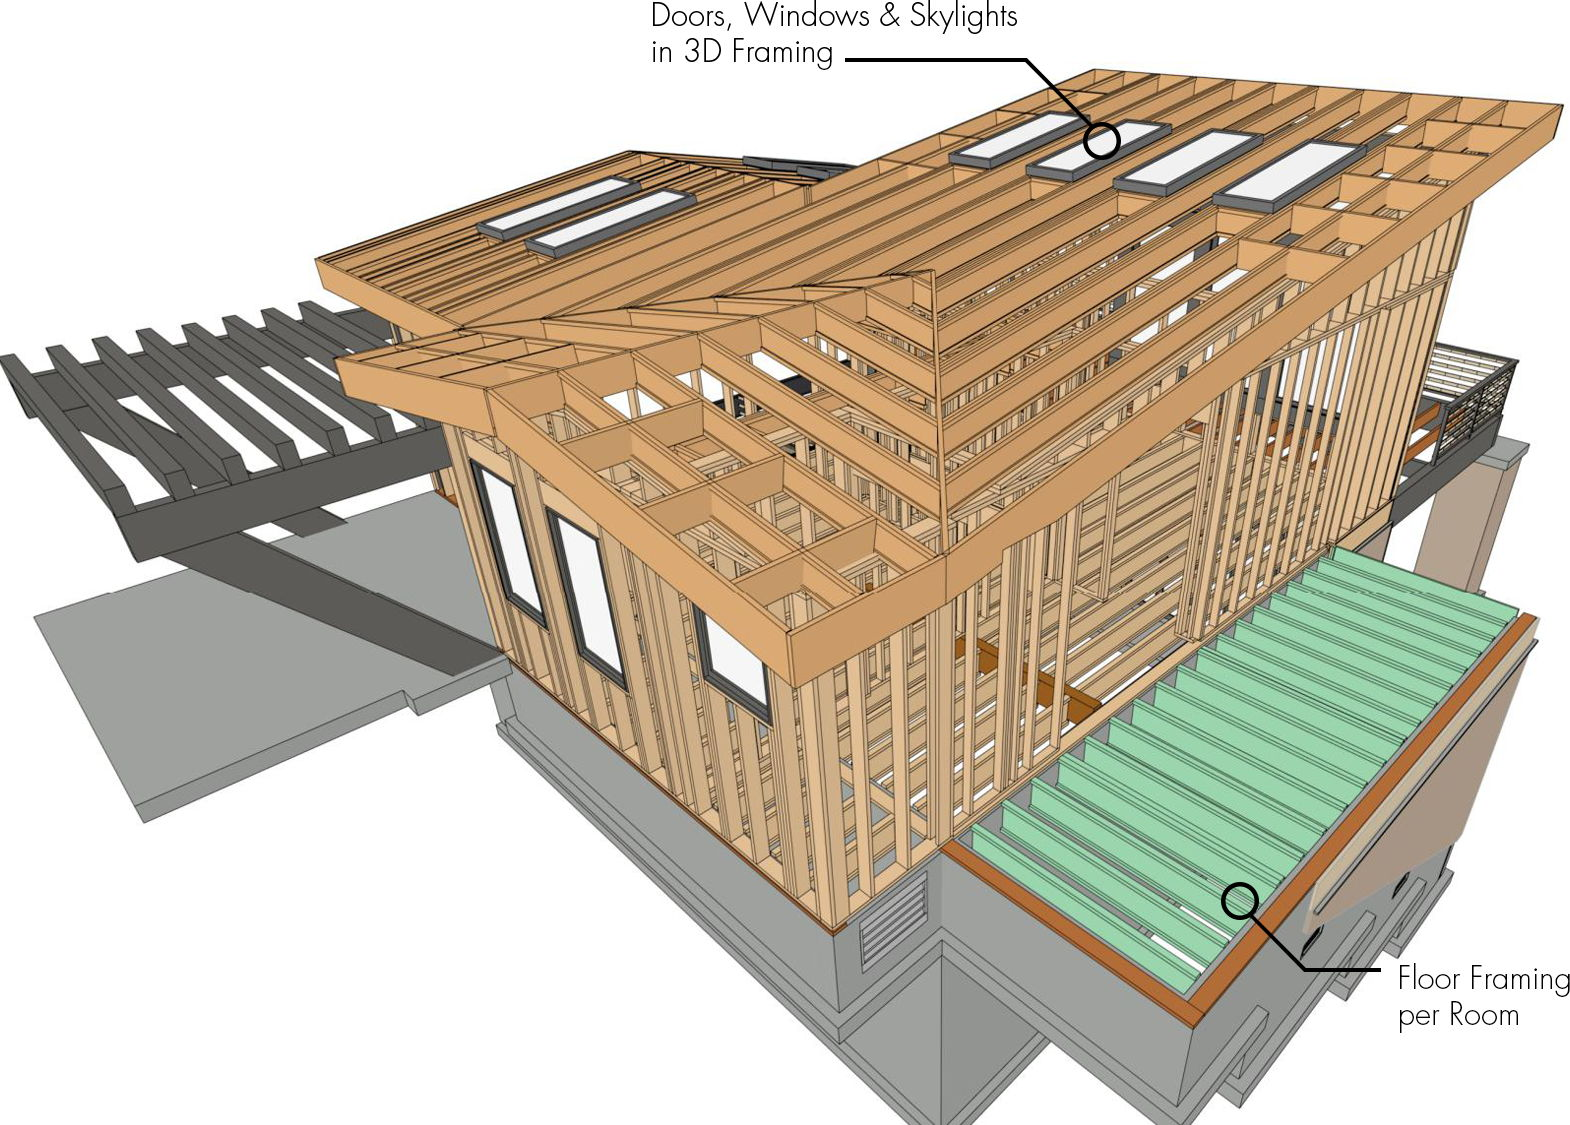 A 3D framing model showing the new framing features in Chief Architect X12.